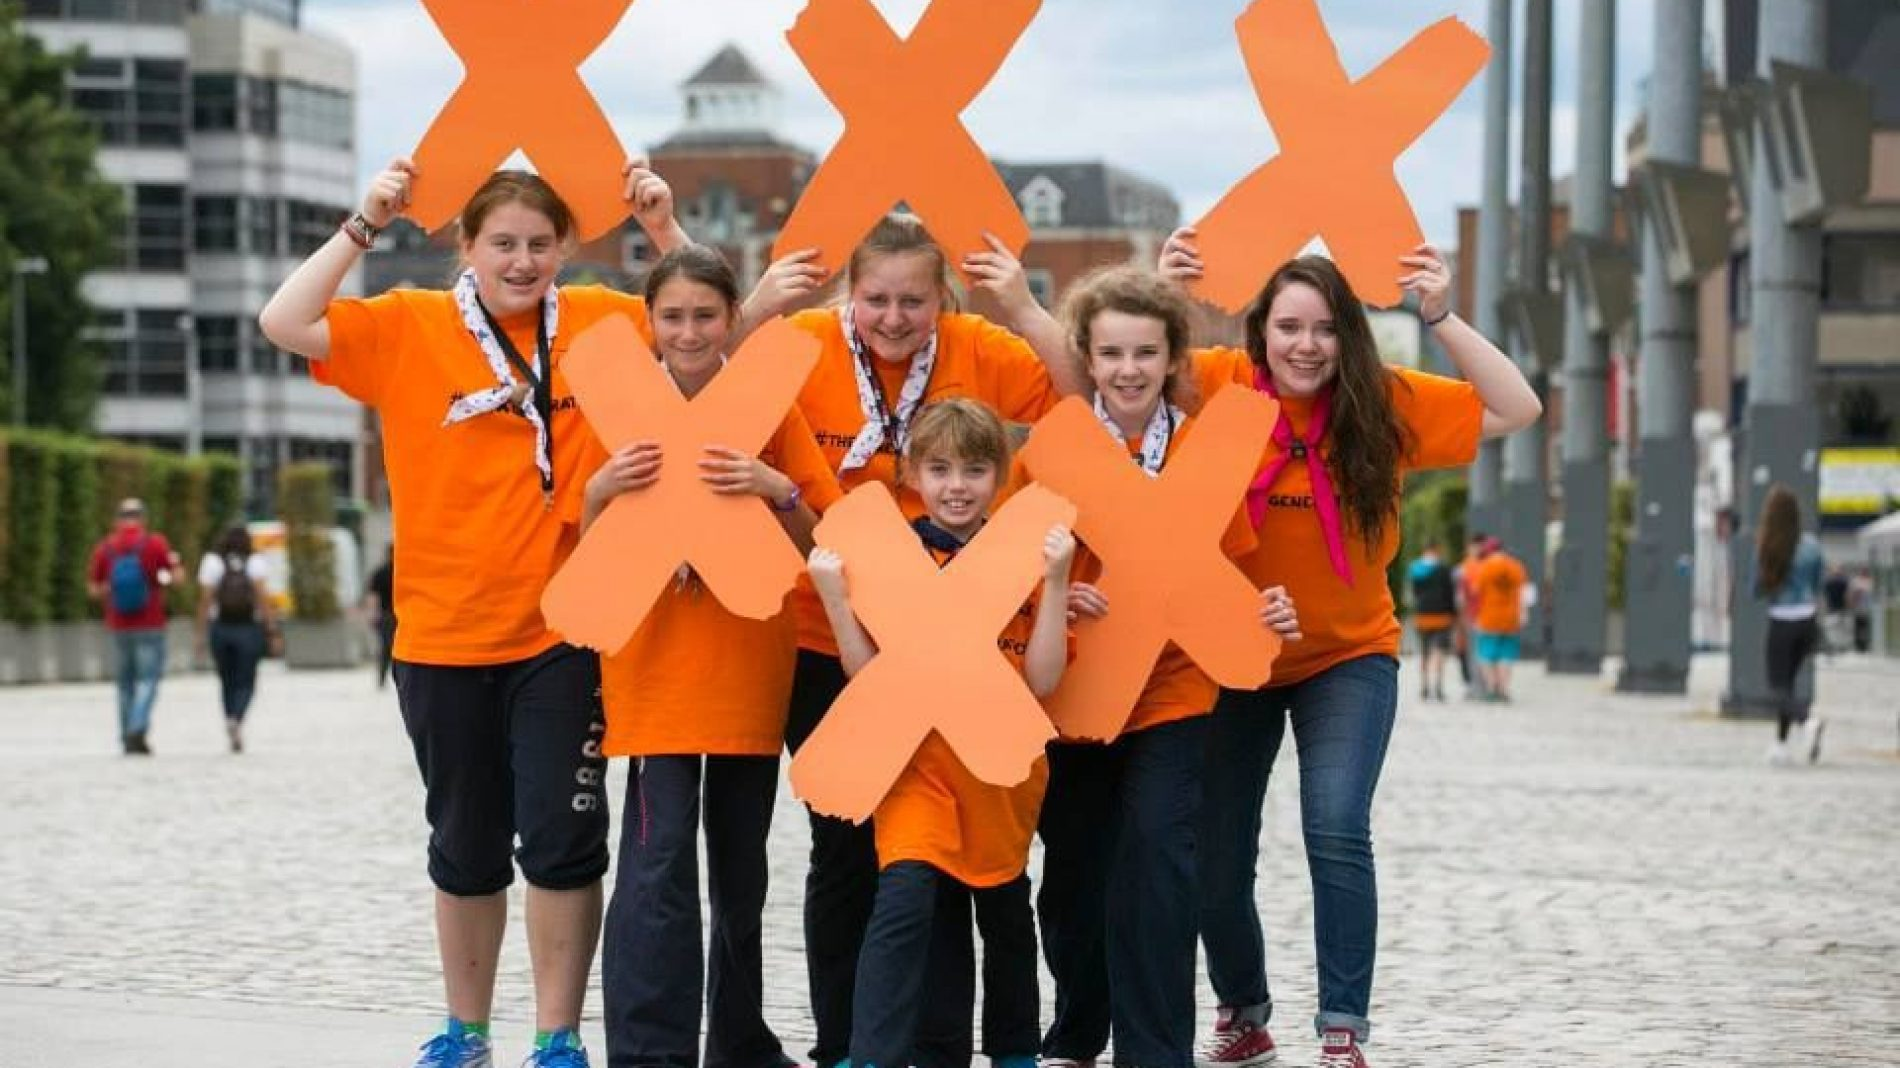 group of young people holding up x's